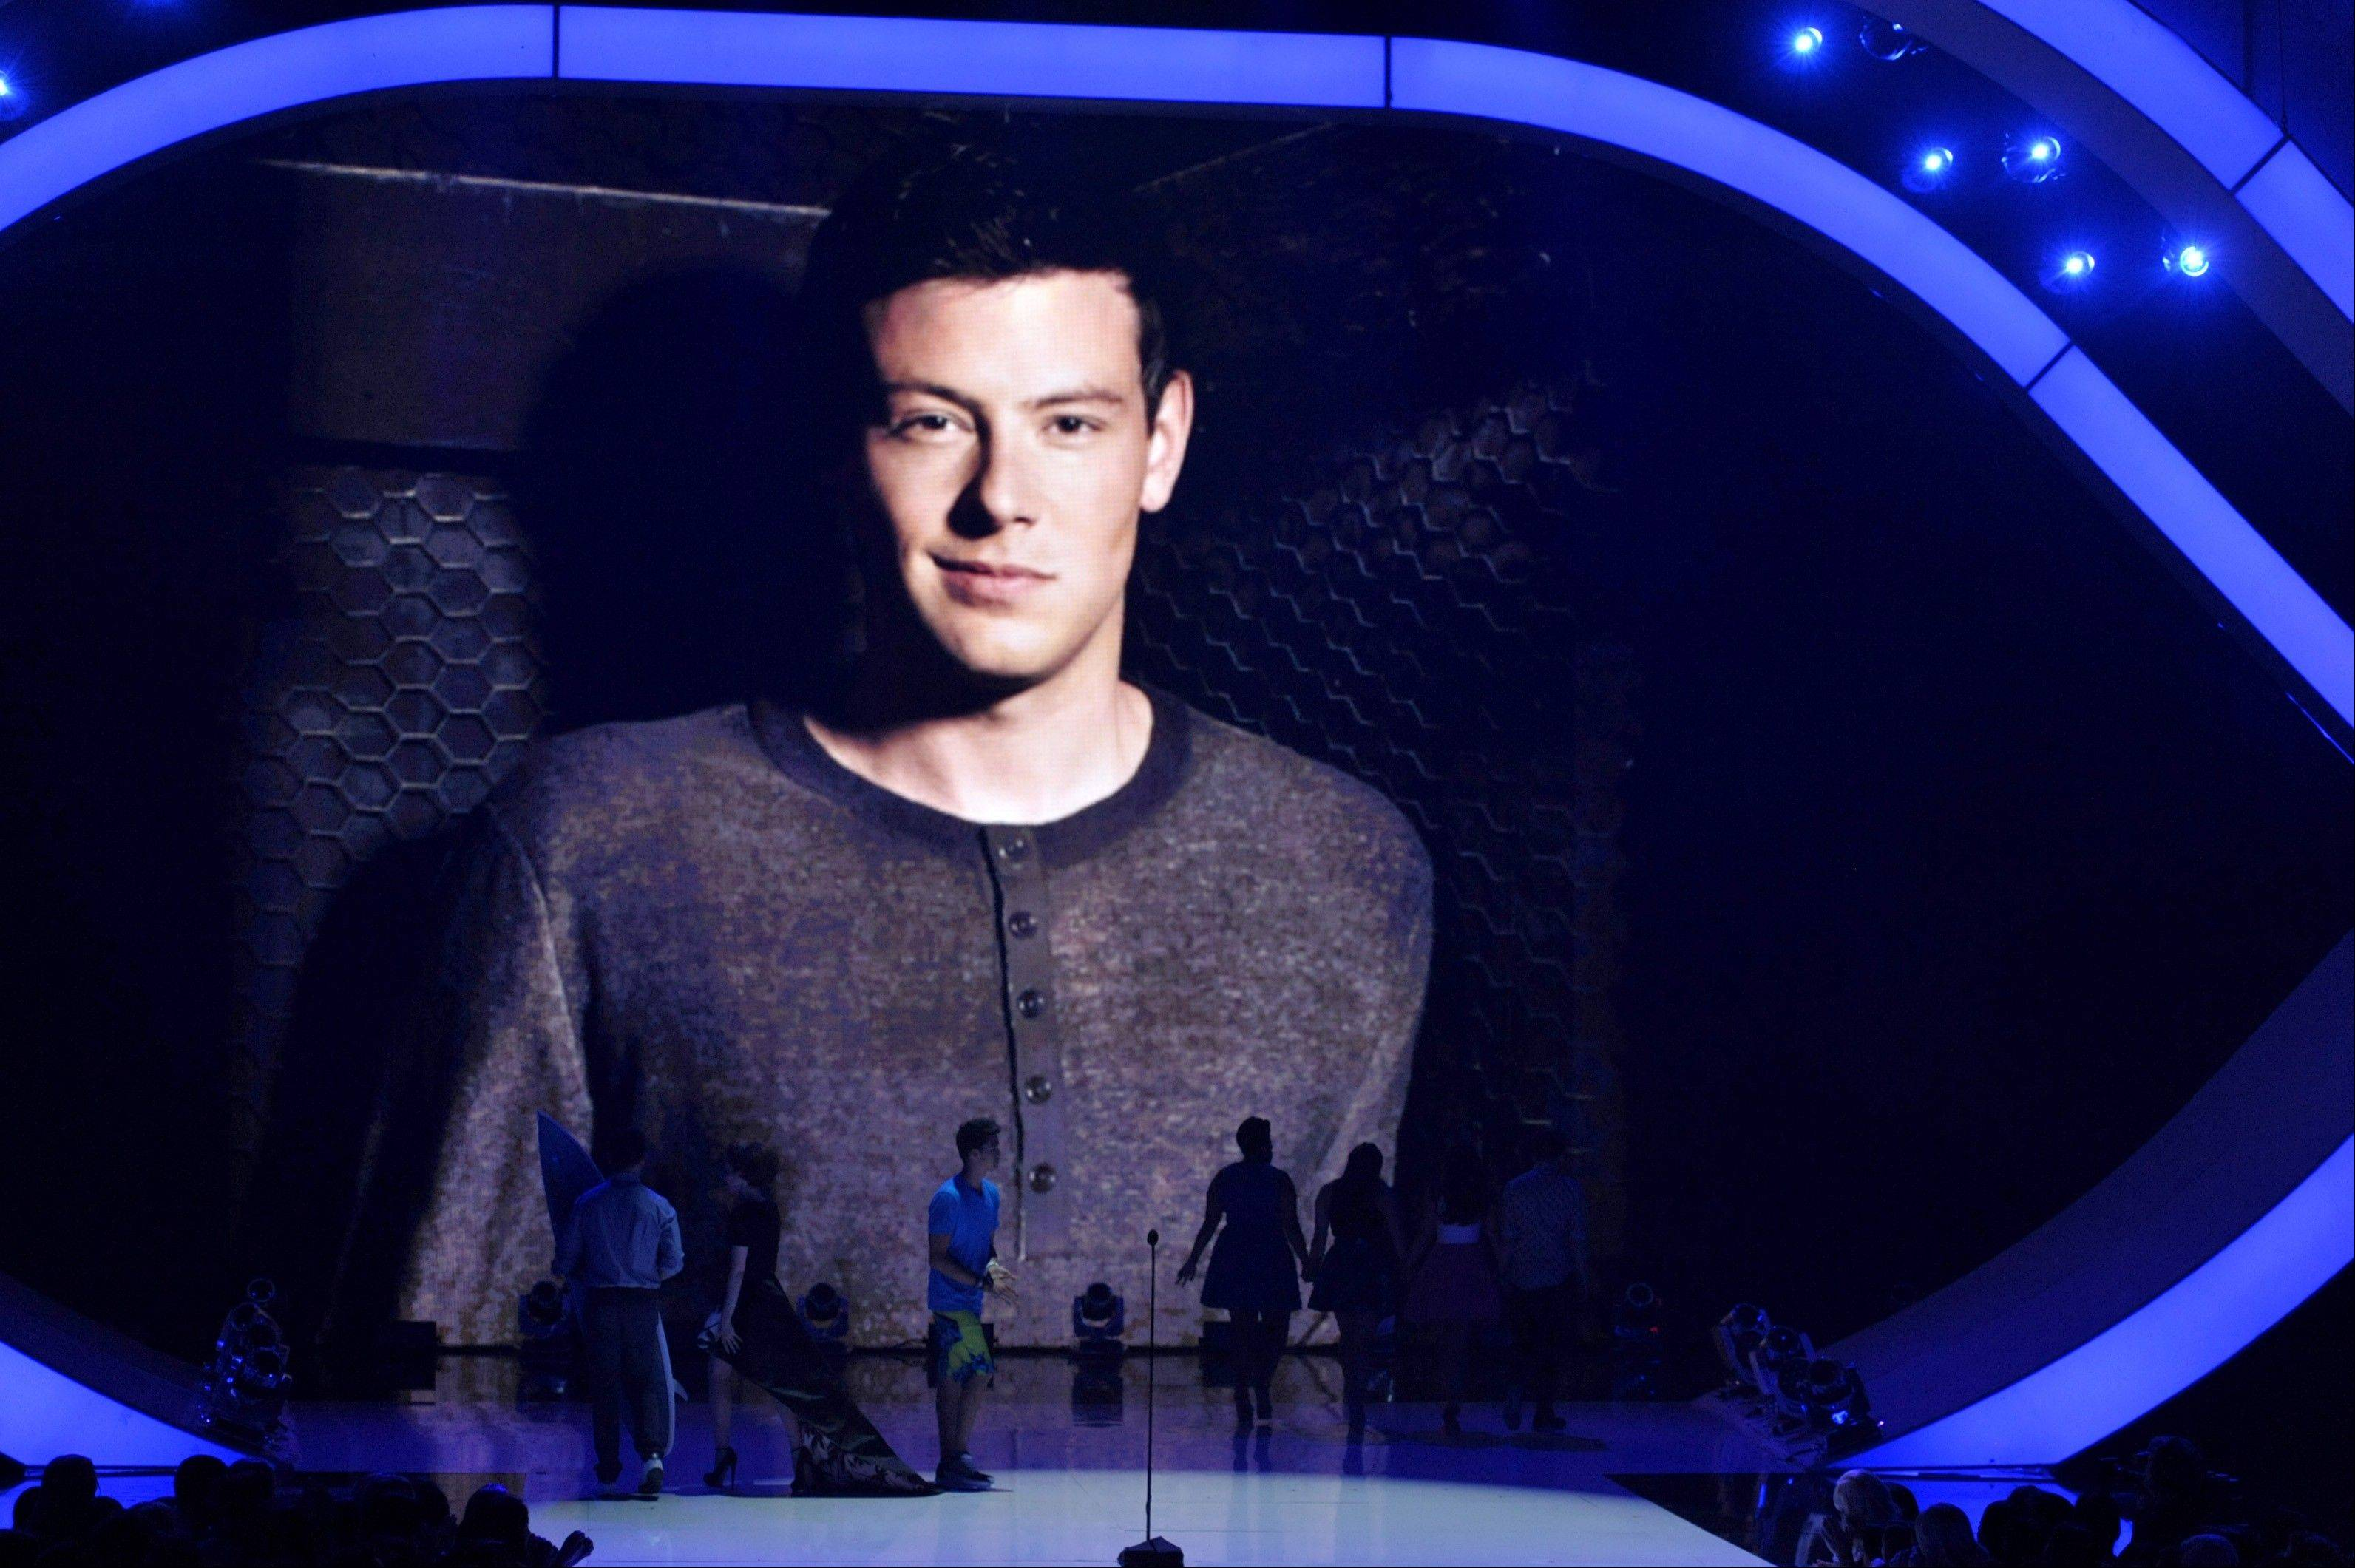 An image of the late Cory Monteith is pictured on screen at the Teen Choice Awards as a tribute at the Gibson Amphitheater on Sunday.